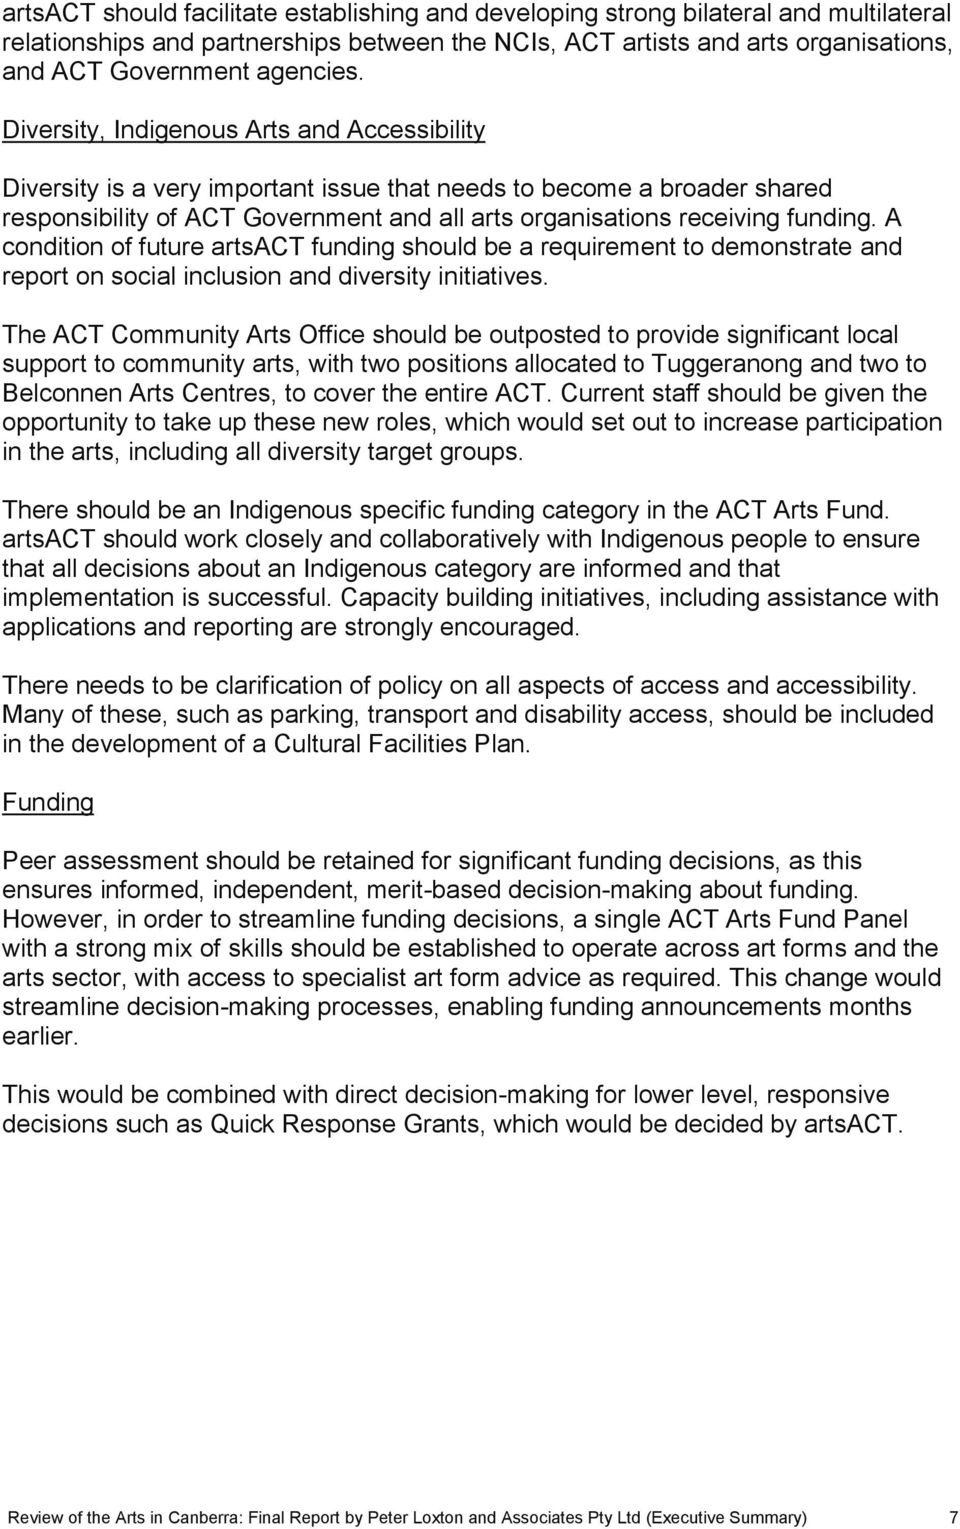 Diversity, Indigenous Arts and Accessibility Diversity is a very important issue that needs to become a broader shared responsibility of ACT Government and all arts organisations receiving funding.